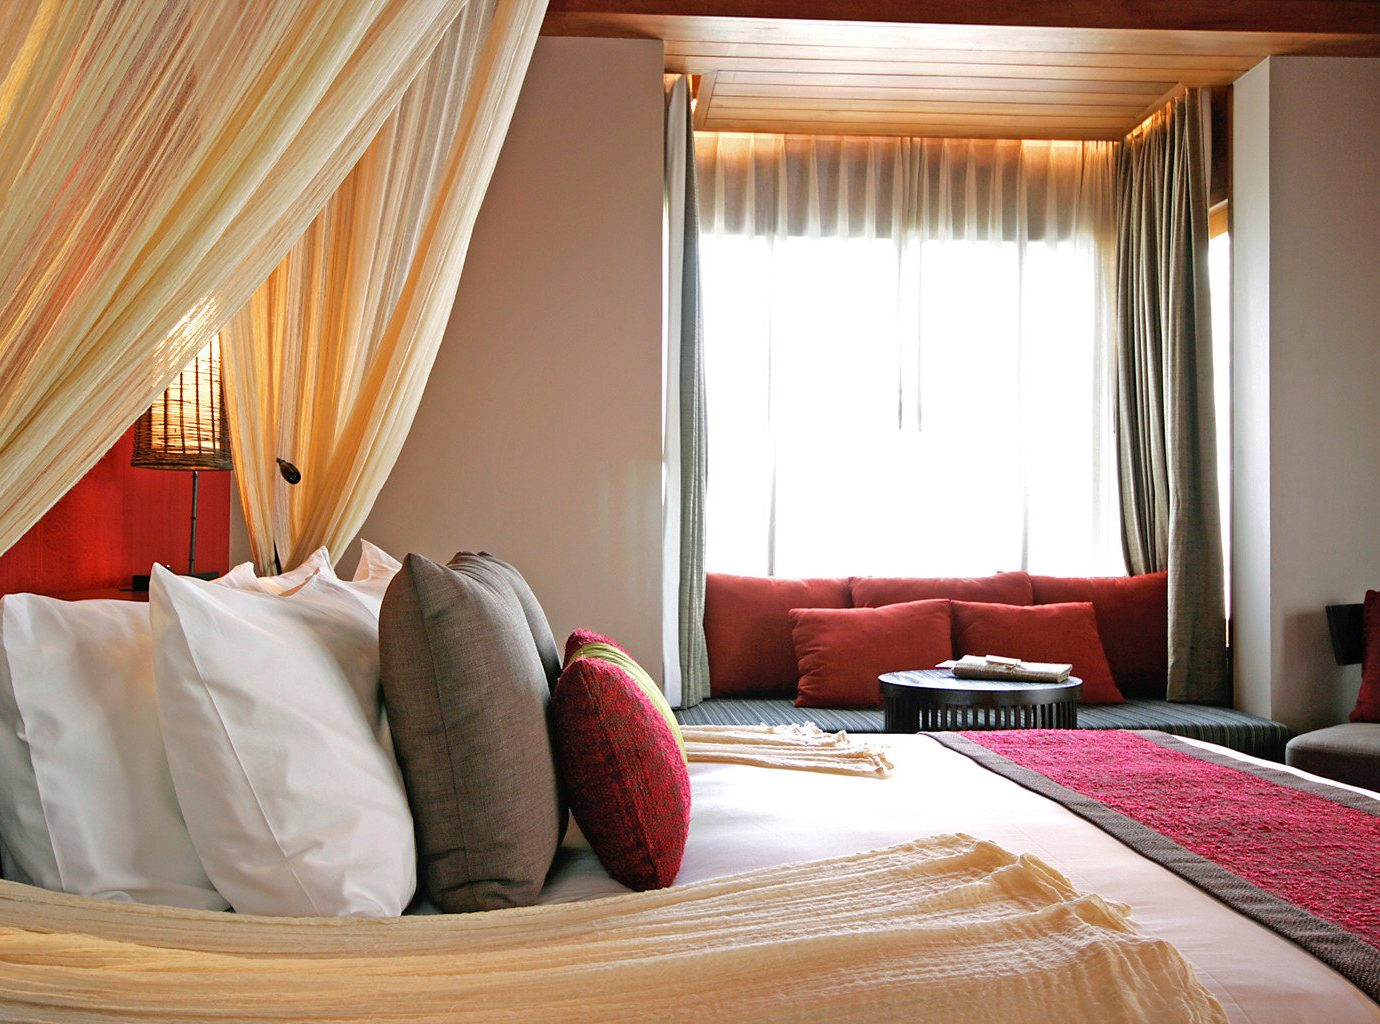 Bedroom Luxury Modern Scenic views Suite property red pillow curtain cottage